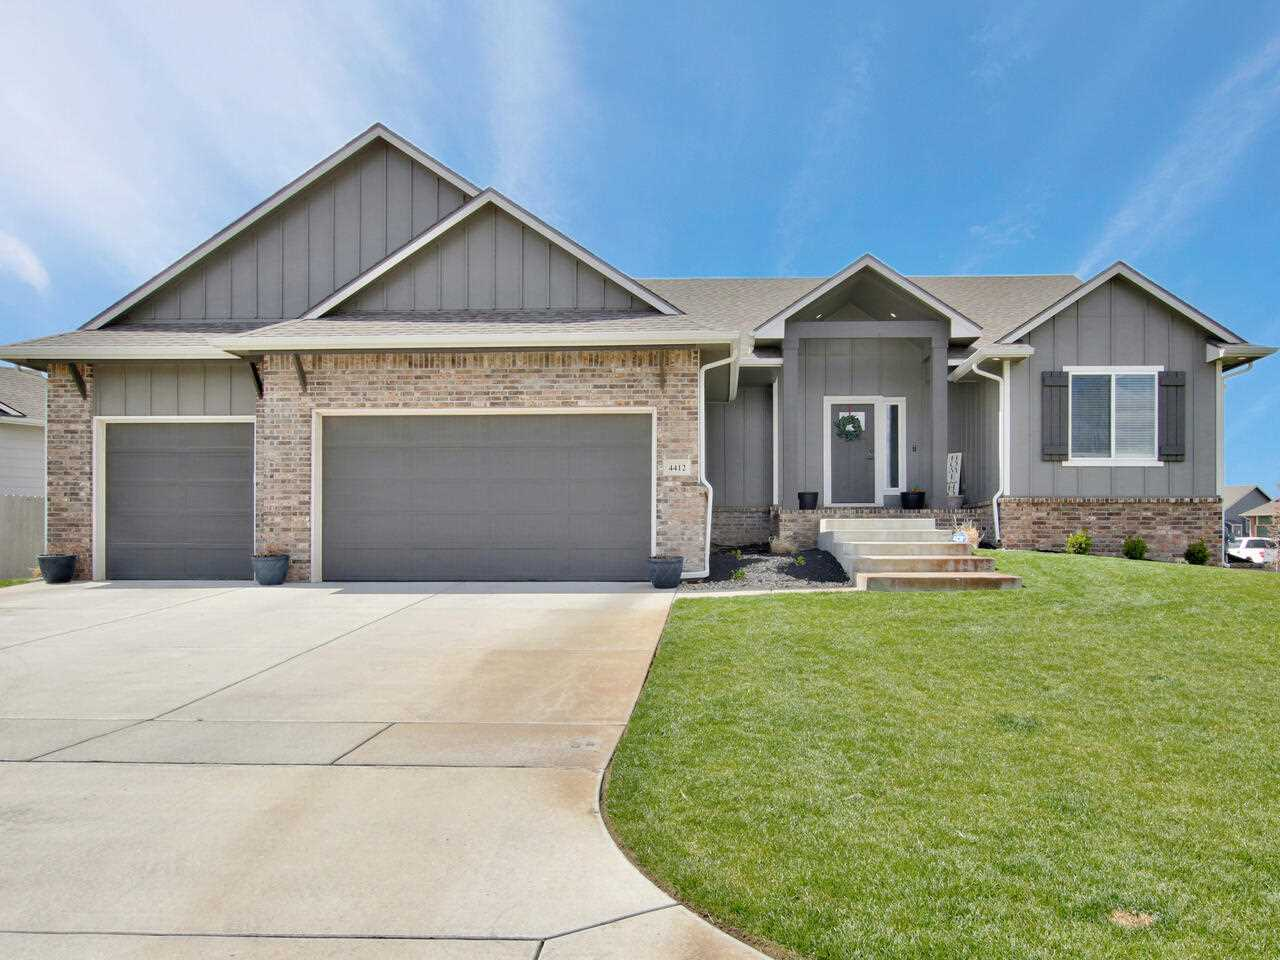 Beautiful custom home in Edgewater and Maize School District. Move-in ready with a Farmhouse feel. 5